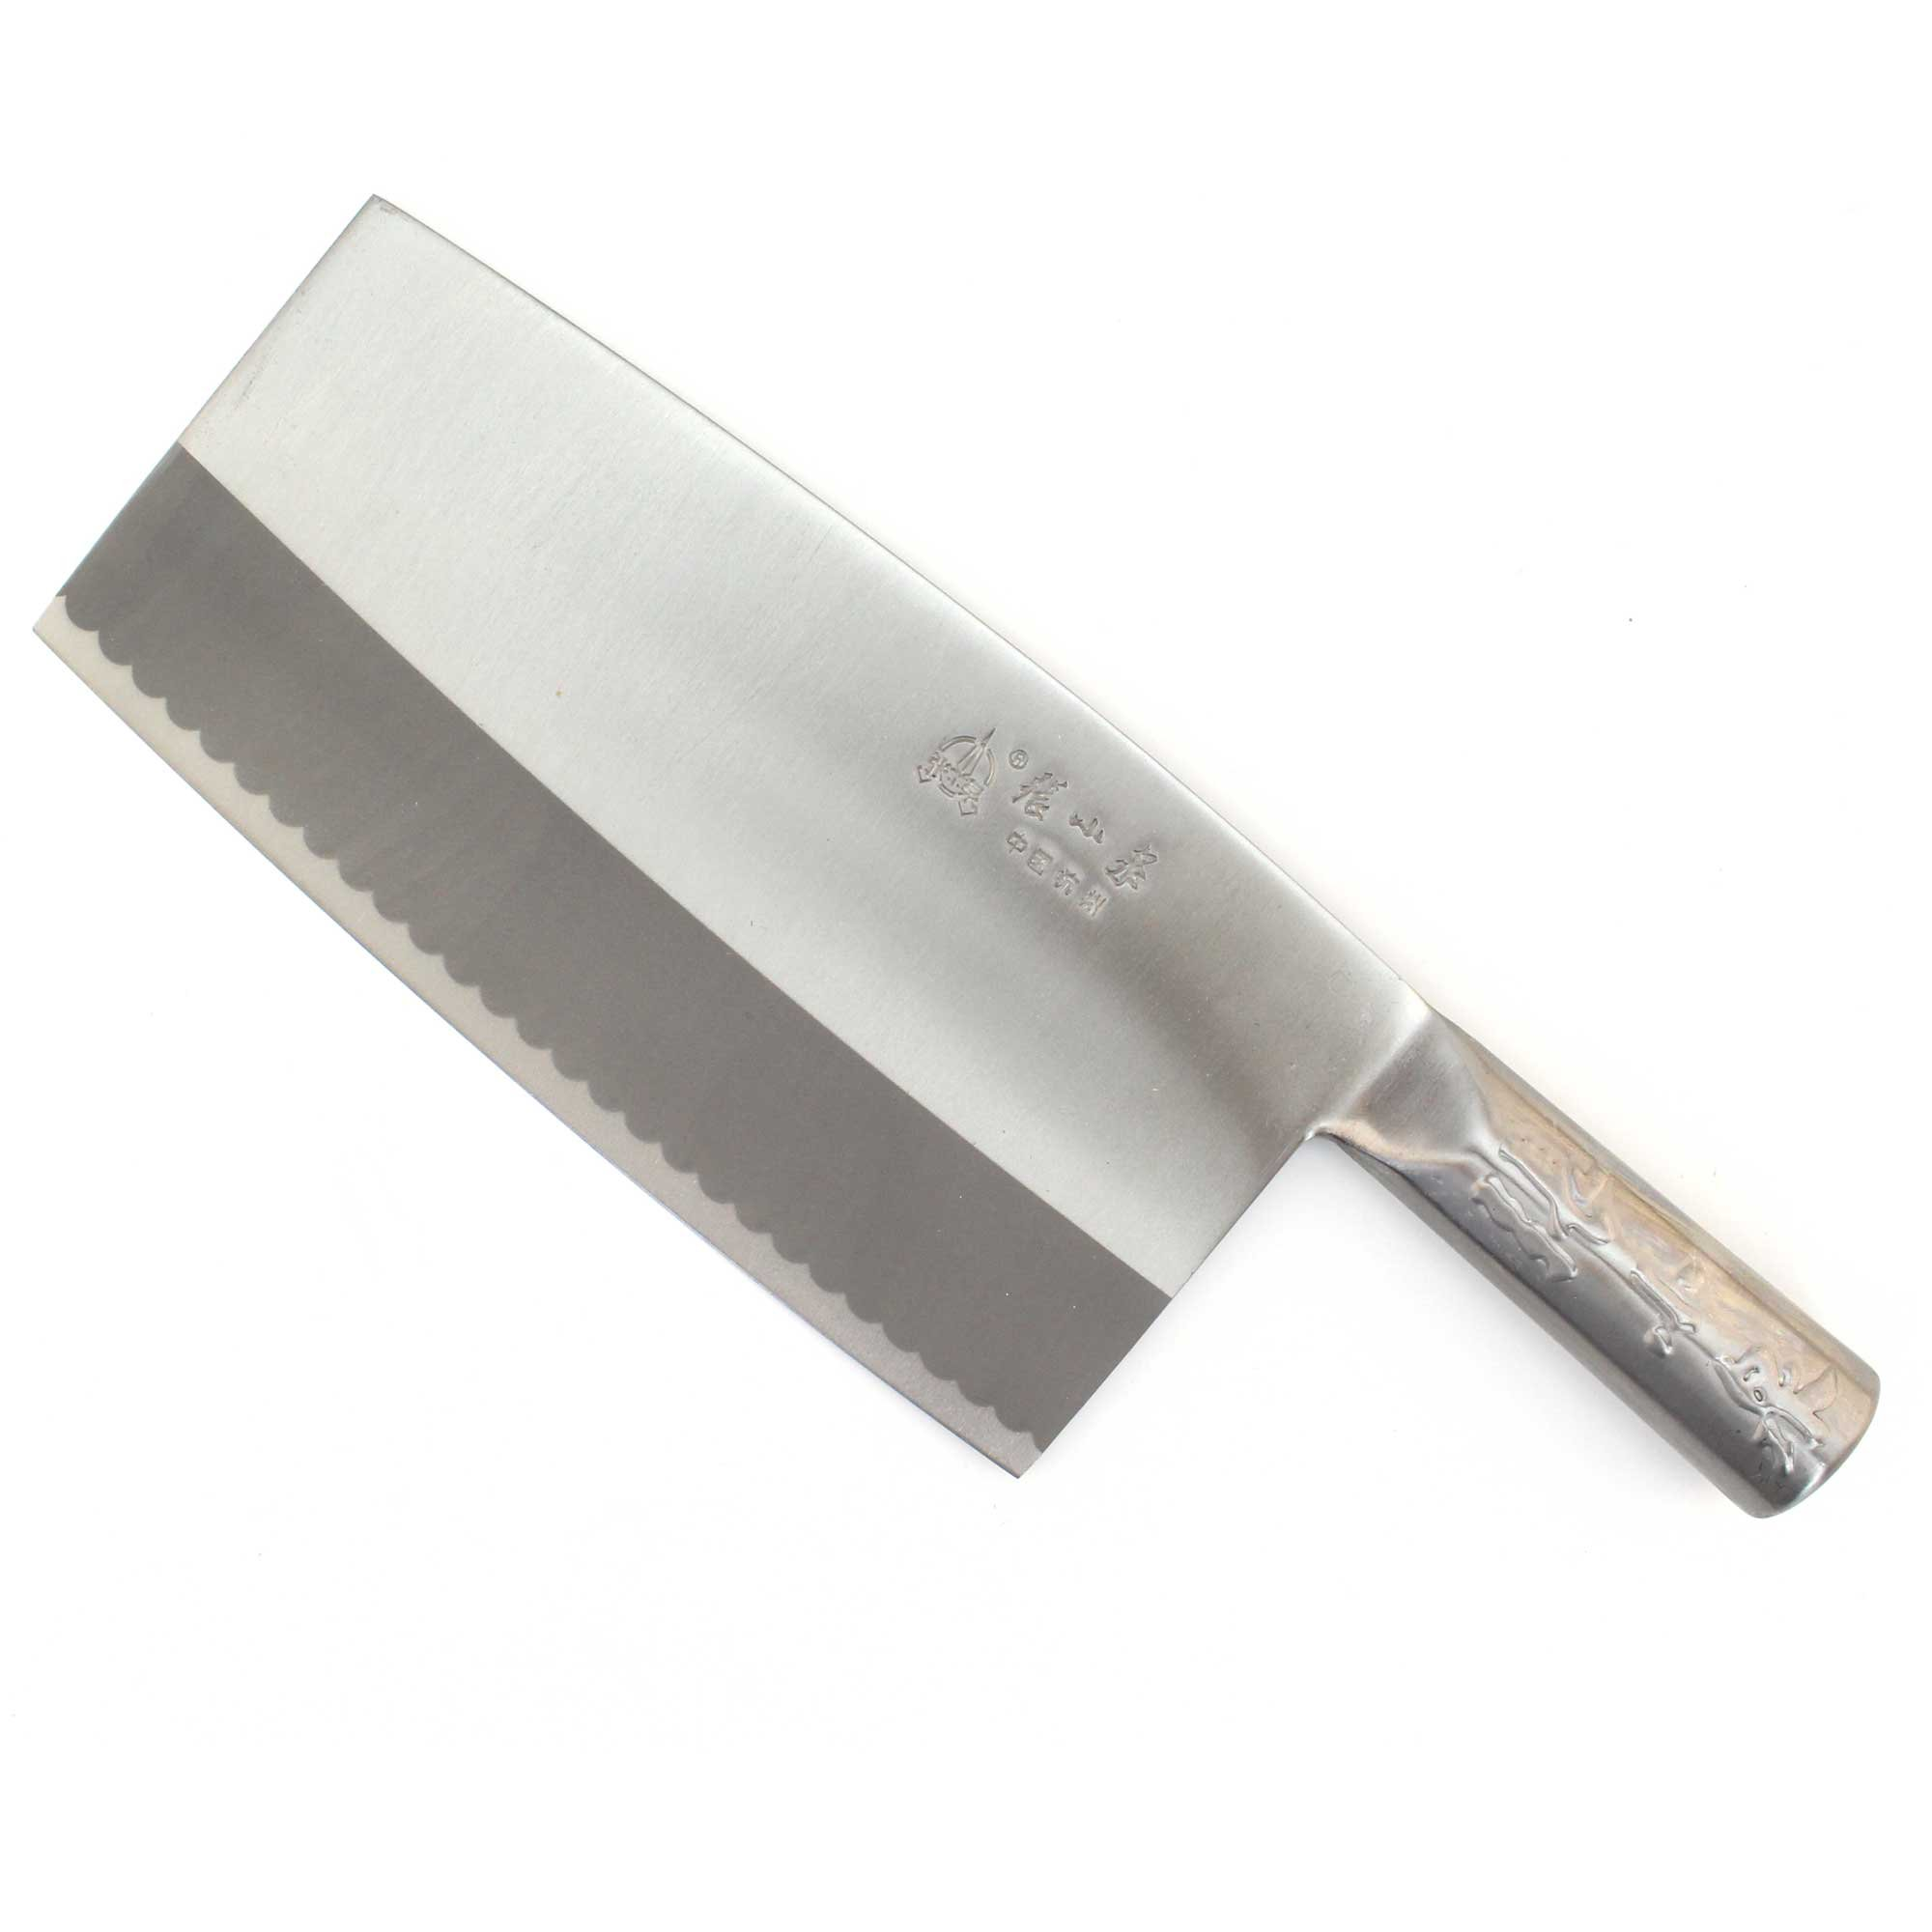 Authentic Chinese Chef Knife Meat Cleaver - BambooMN - 1 Piece